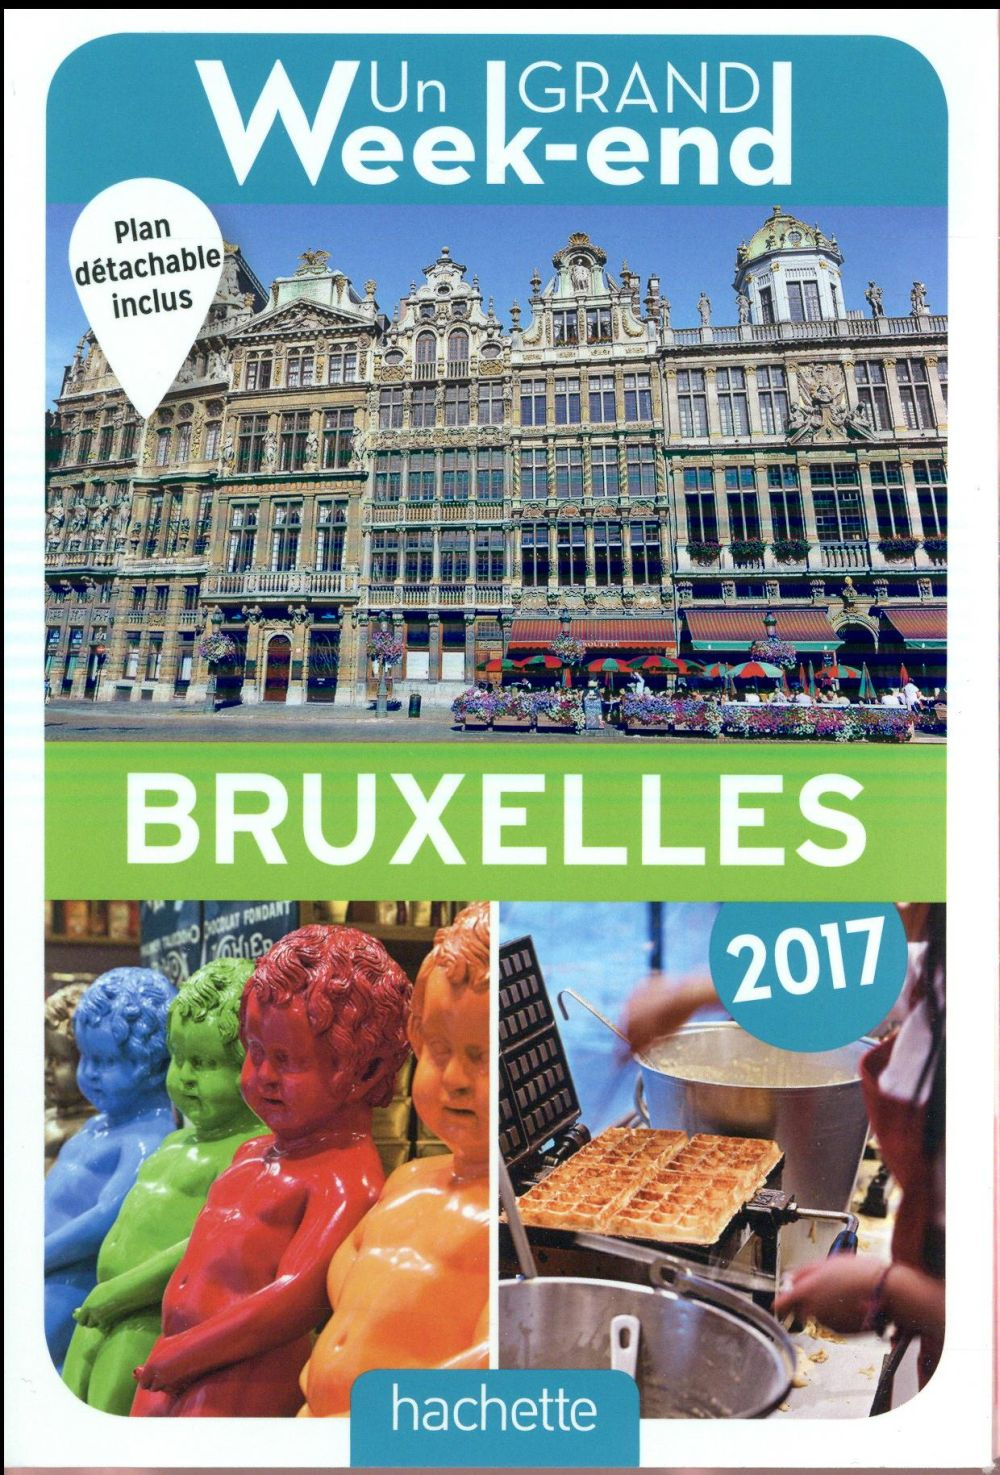 Un grand week-end ; à bruxelles